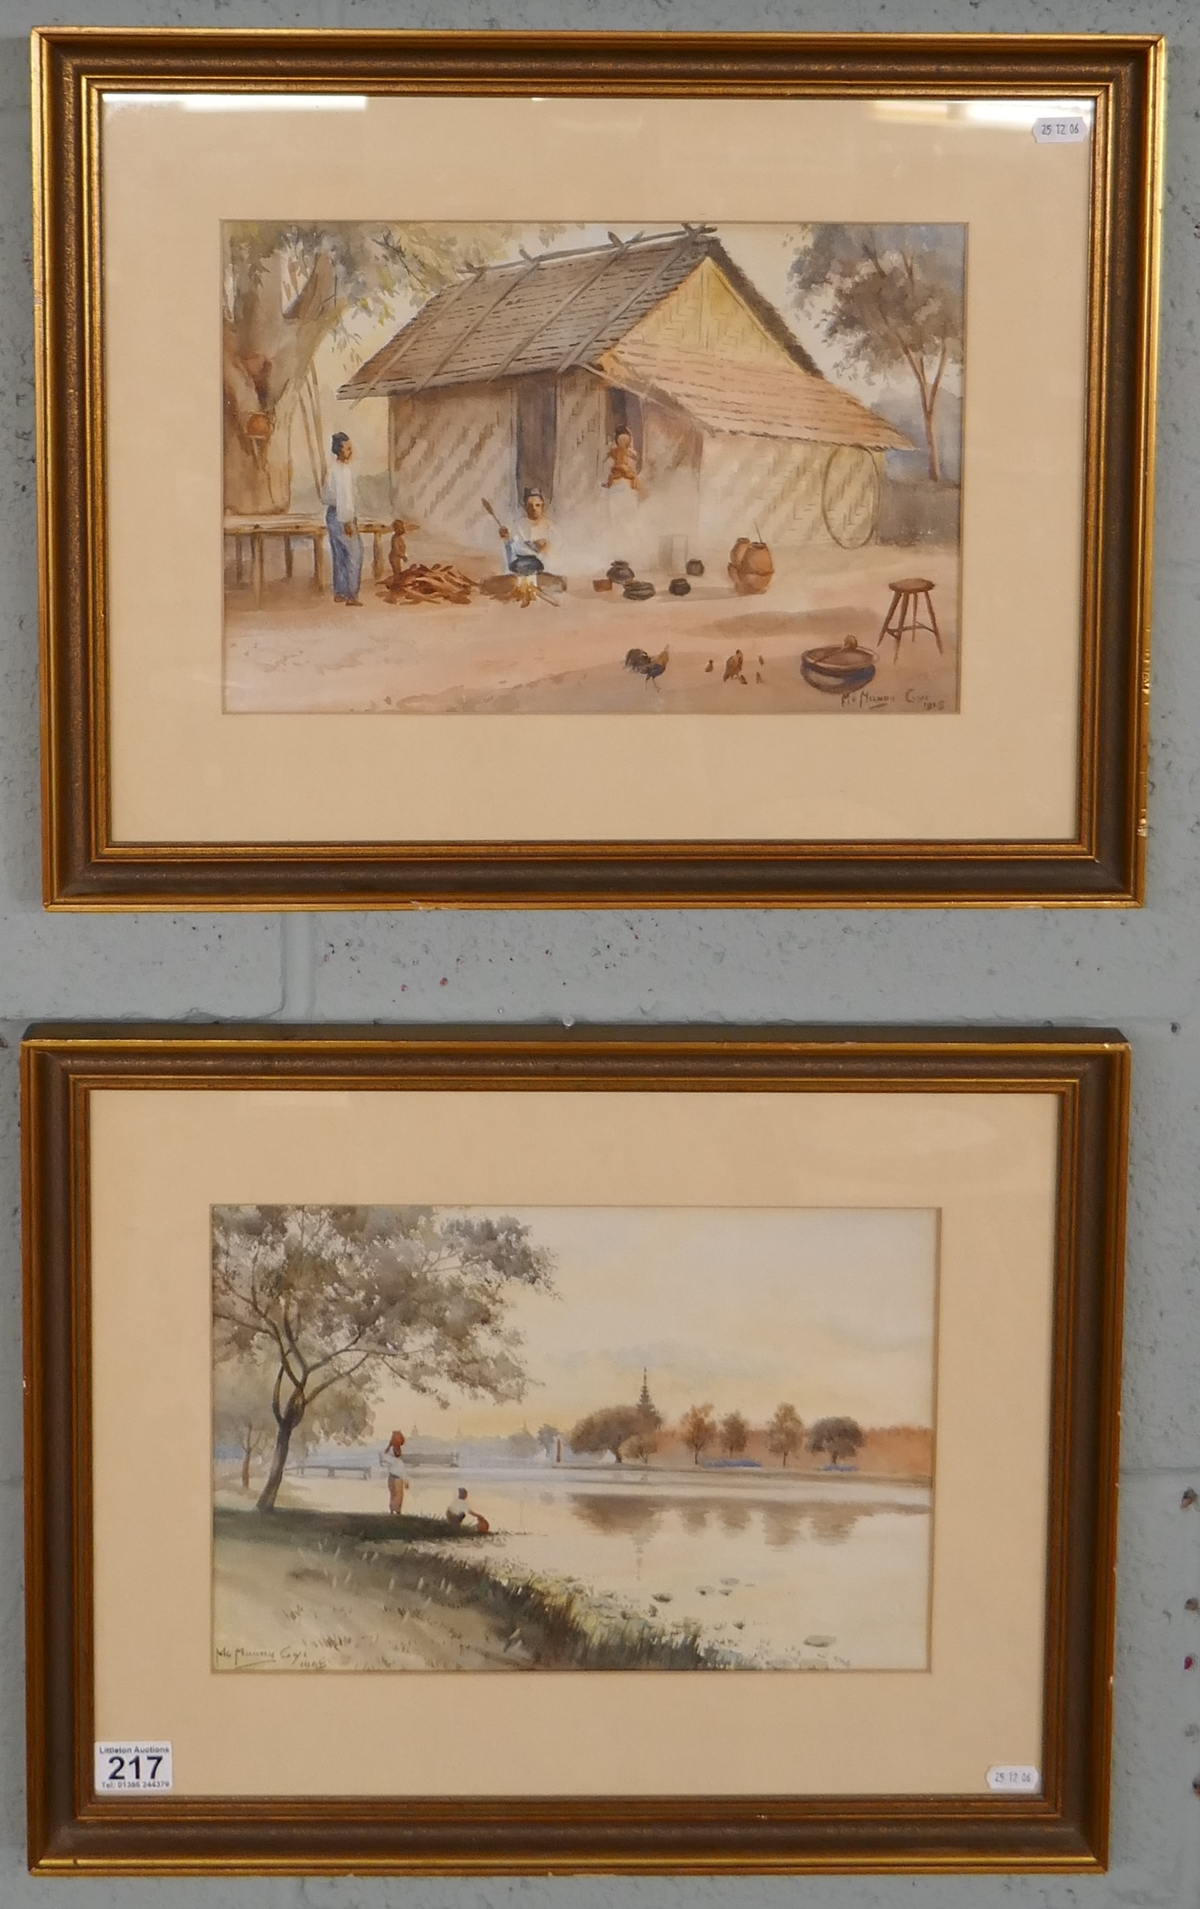 Pair of antique watercolours by Burmese artist Maung Maung Gyl